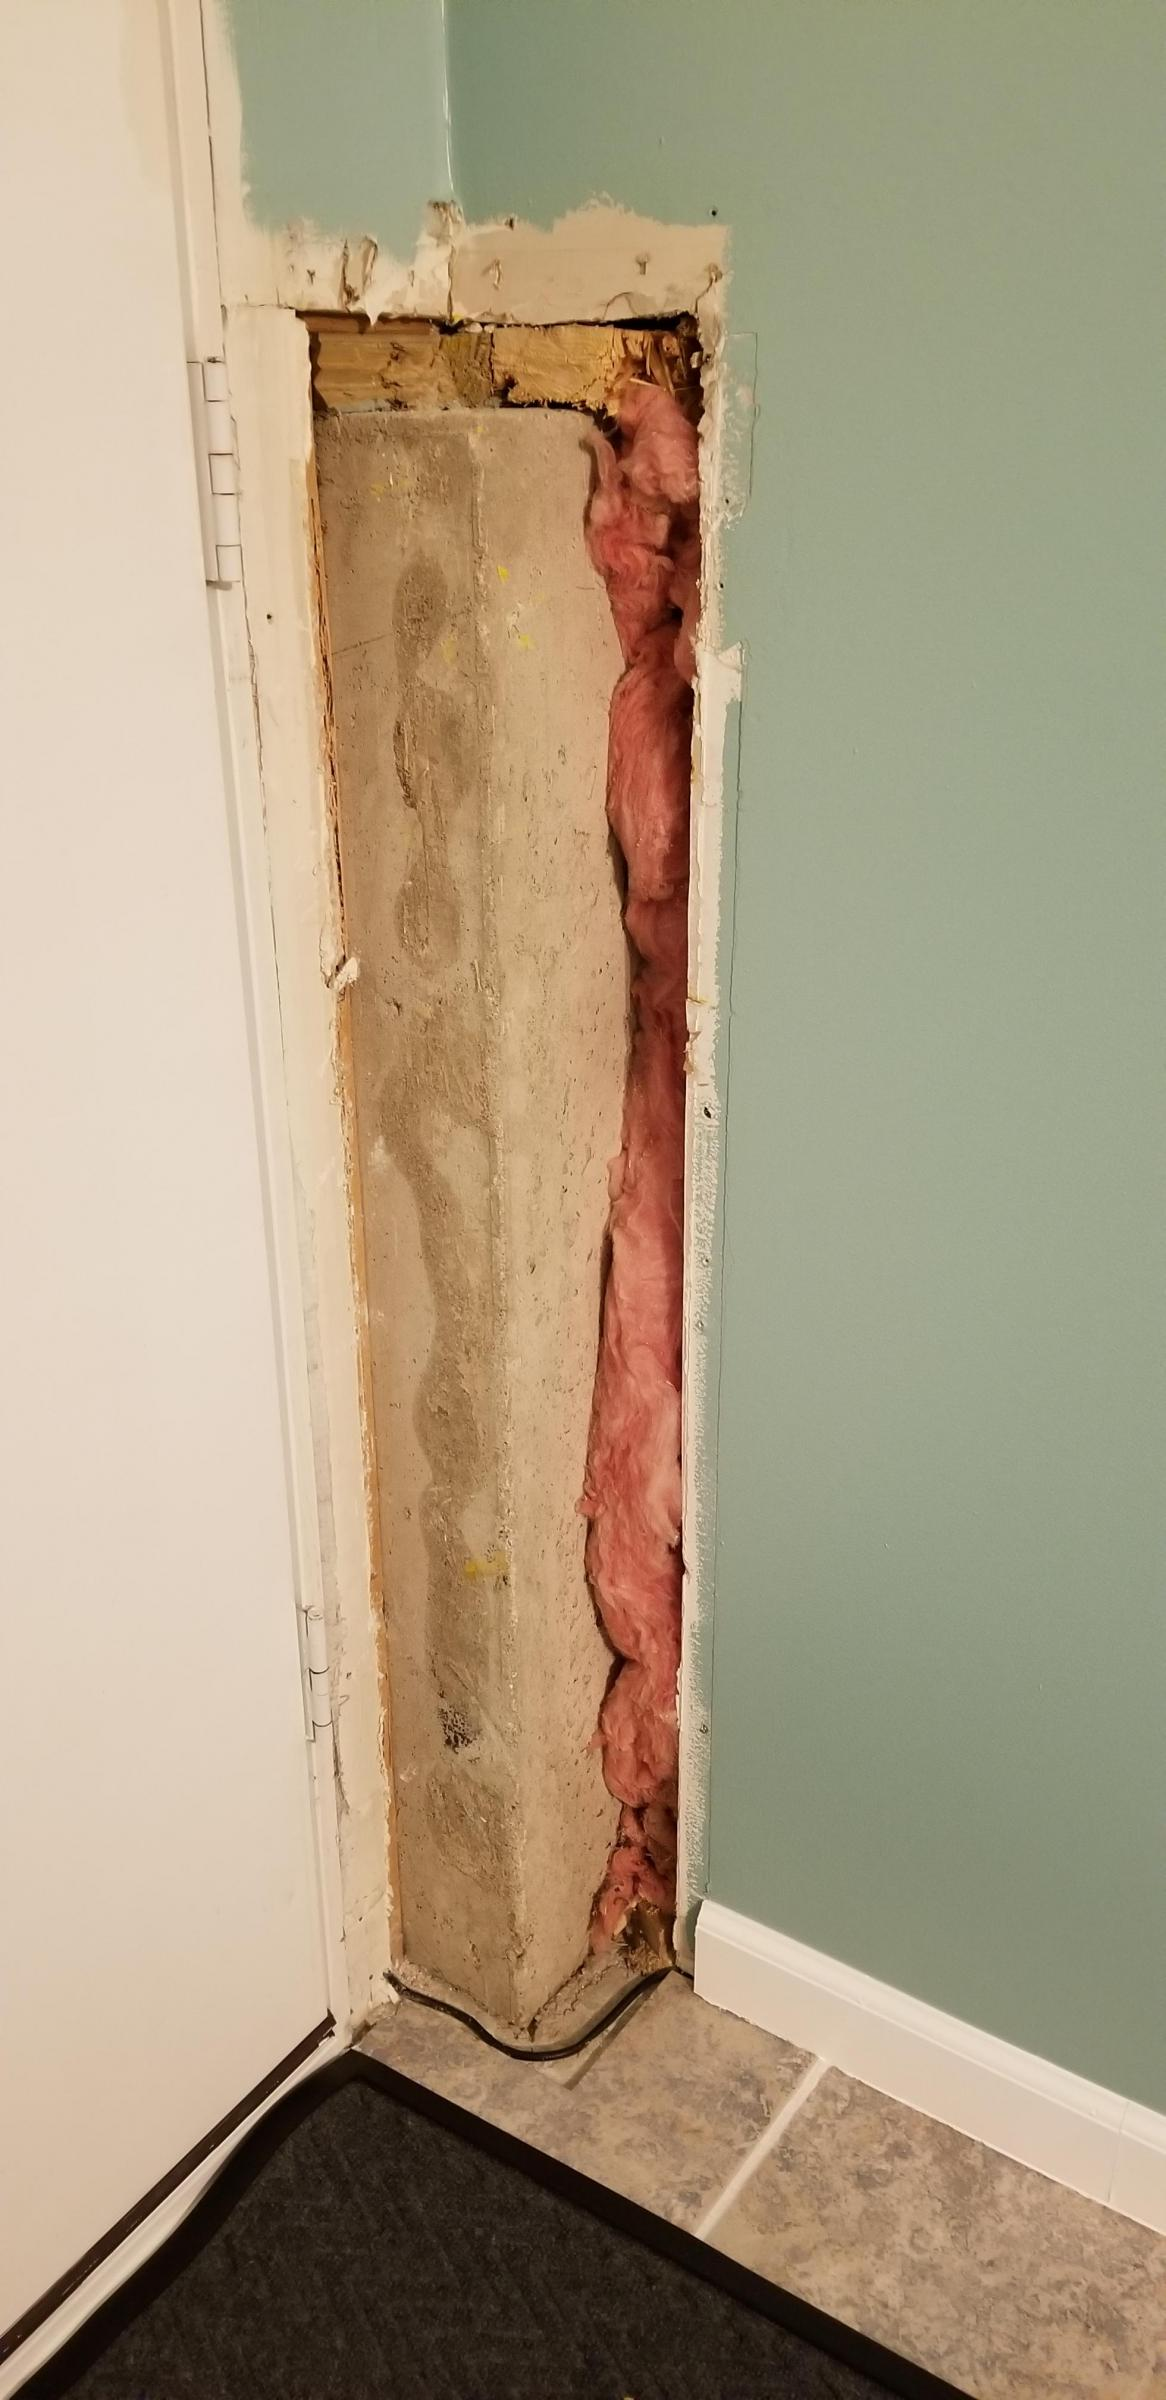 Covering this exposed corner an easy way?-1571309255252474640465913090829_1571309266620.jpg